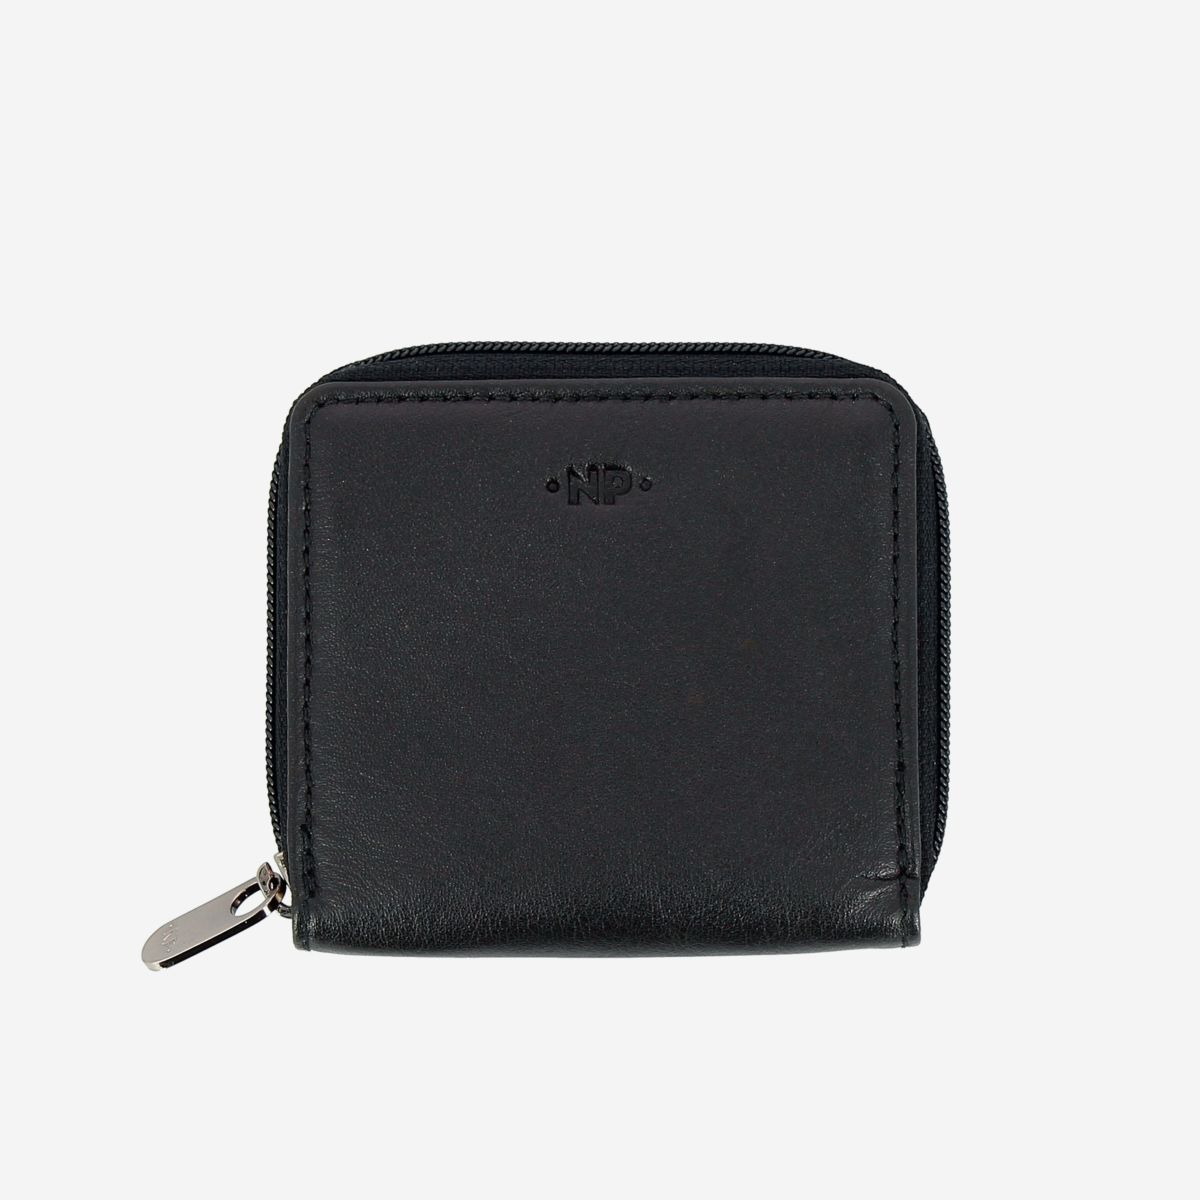 NUVOLA PELLE Leather Coin Purse - Black